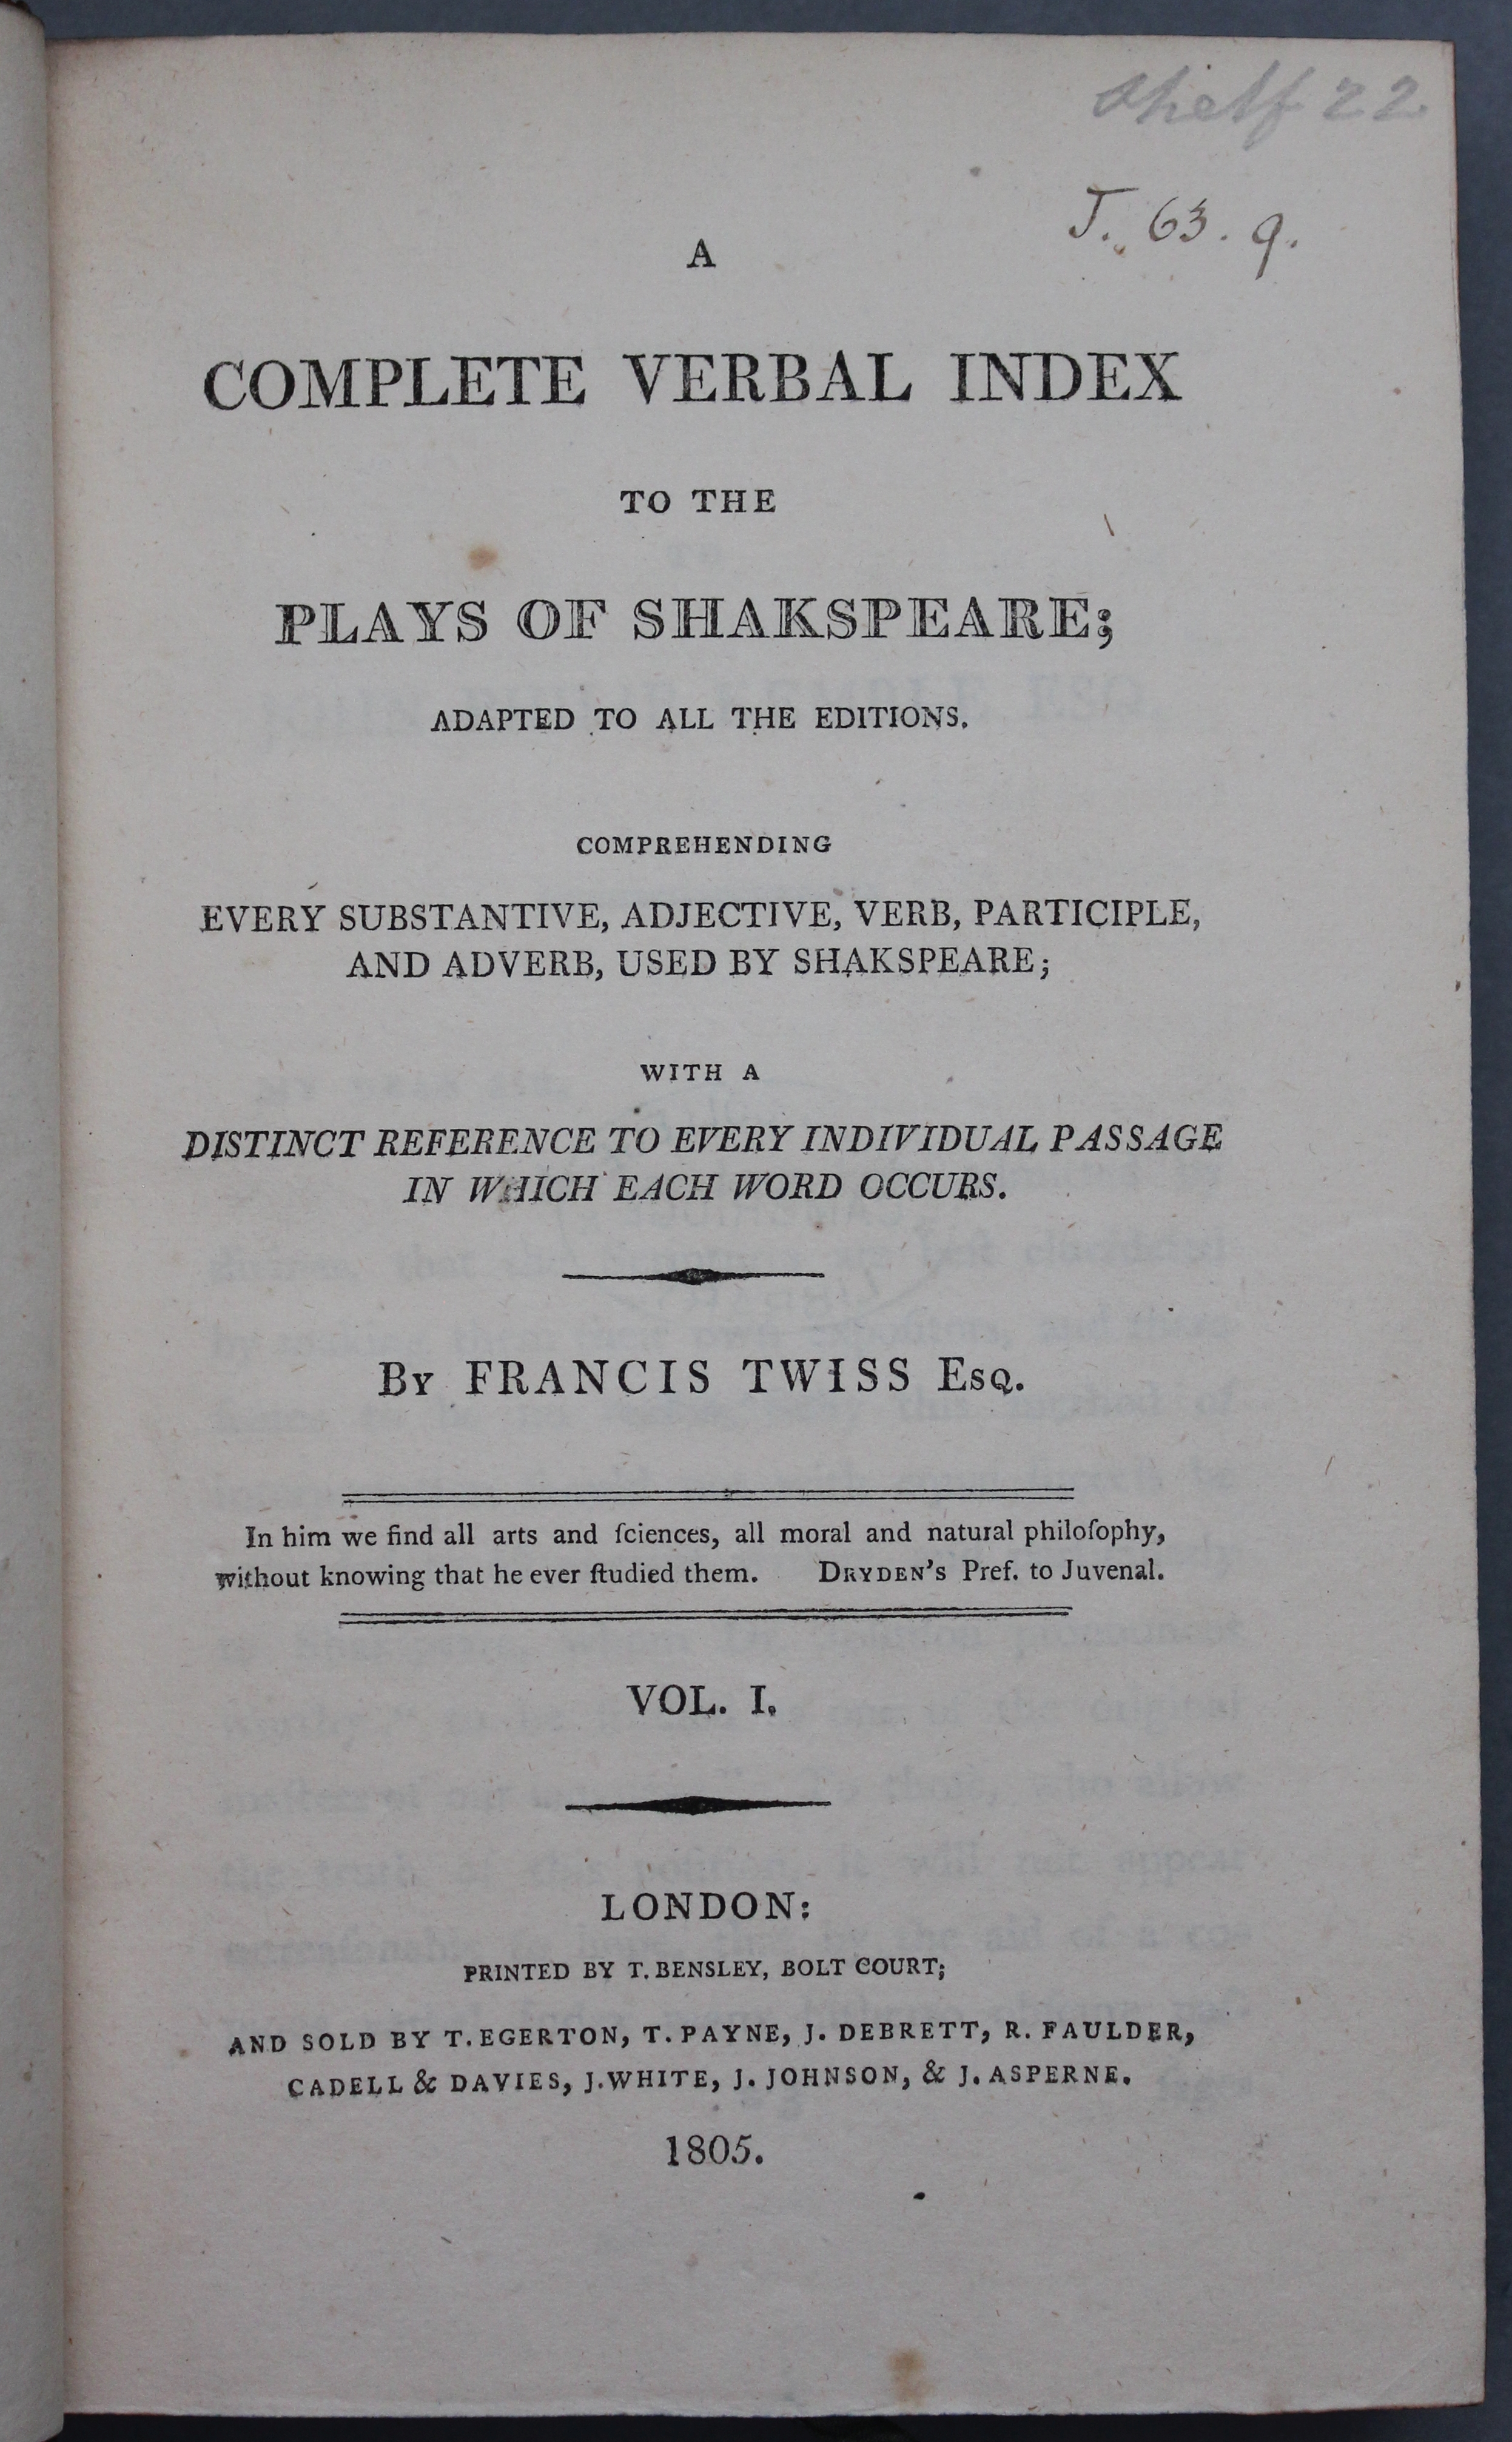 Title page from Francis Twiss, A Complete Verbal Index to the Plays of Shakespeare (London, 1805) (Thackeray.J.63.9)